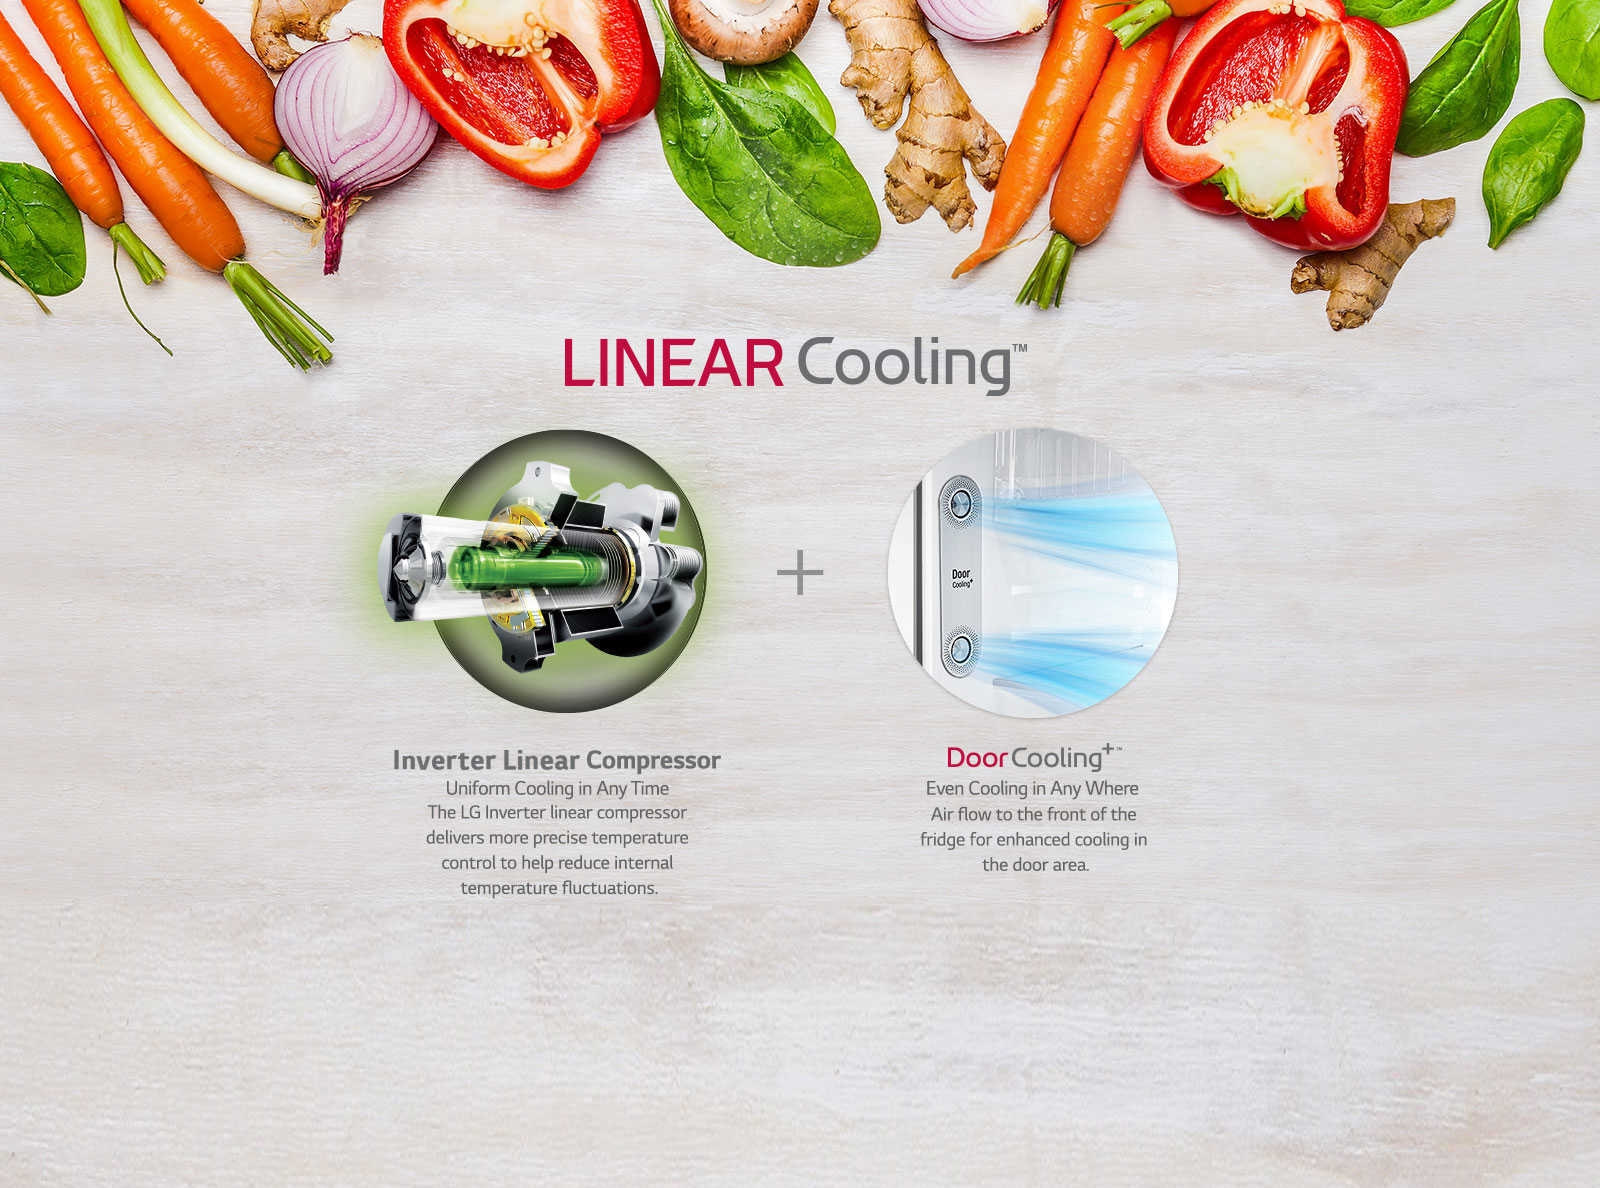 Linear Cooling